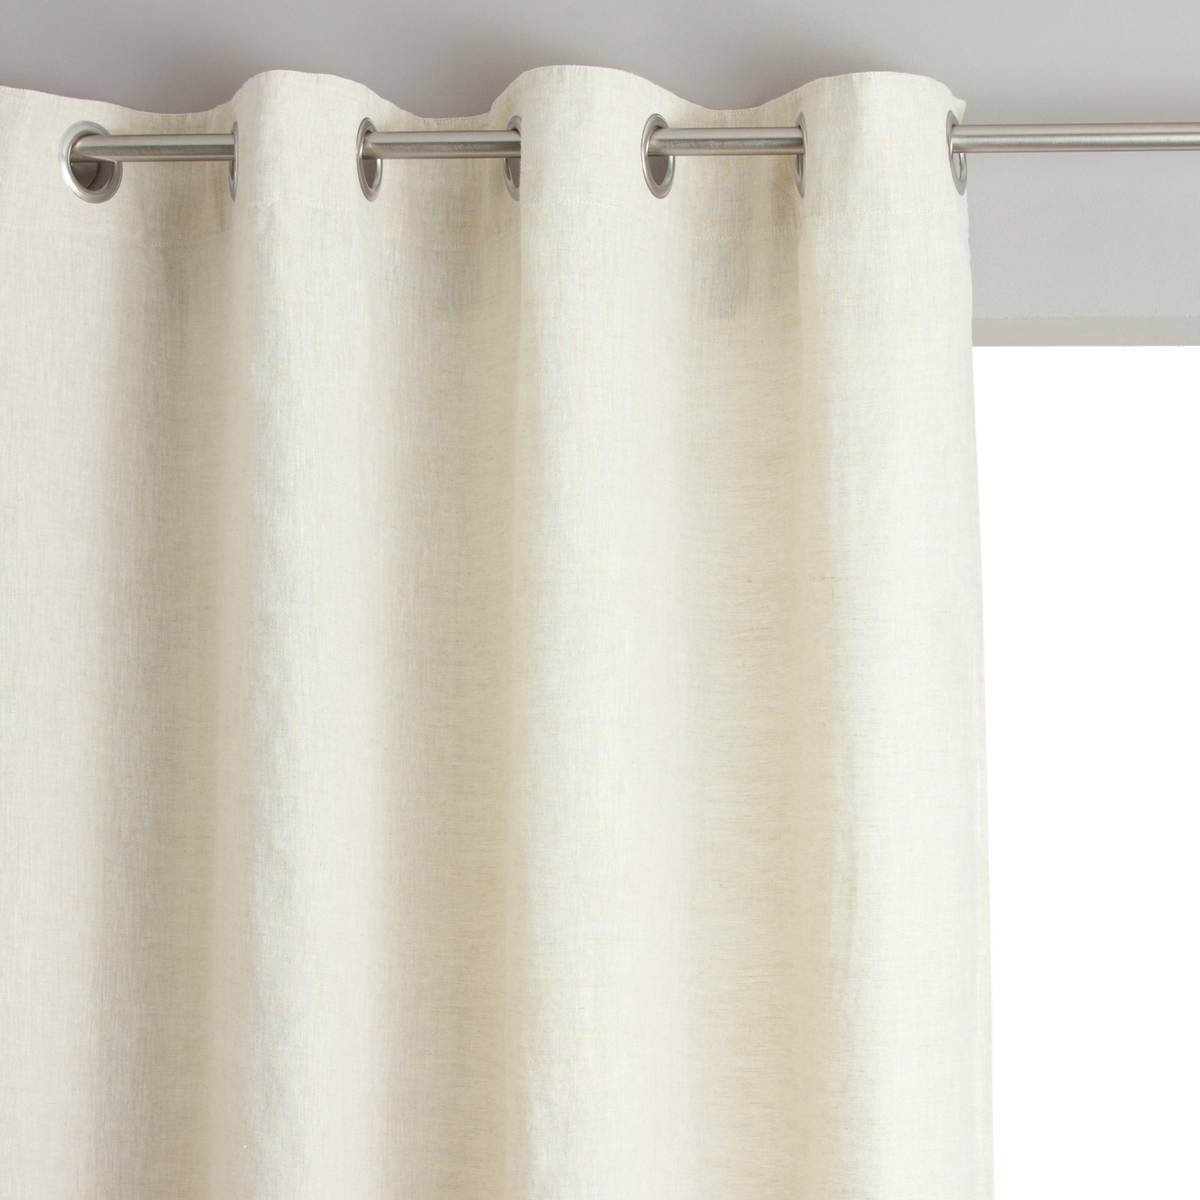 AM.PM. Cortina de lino lavado con ojales, Private beige